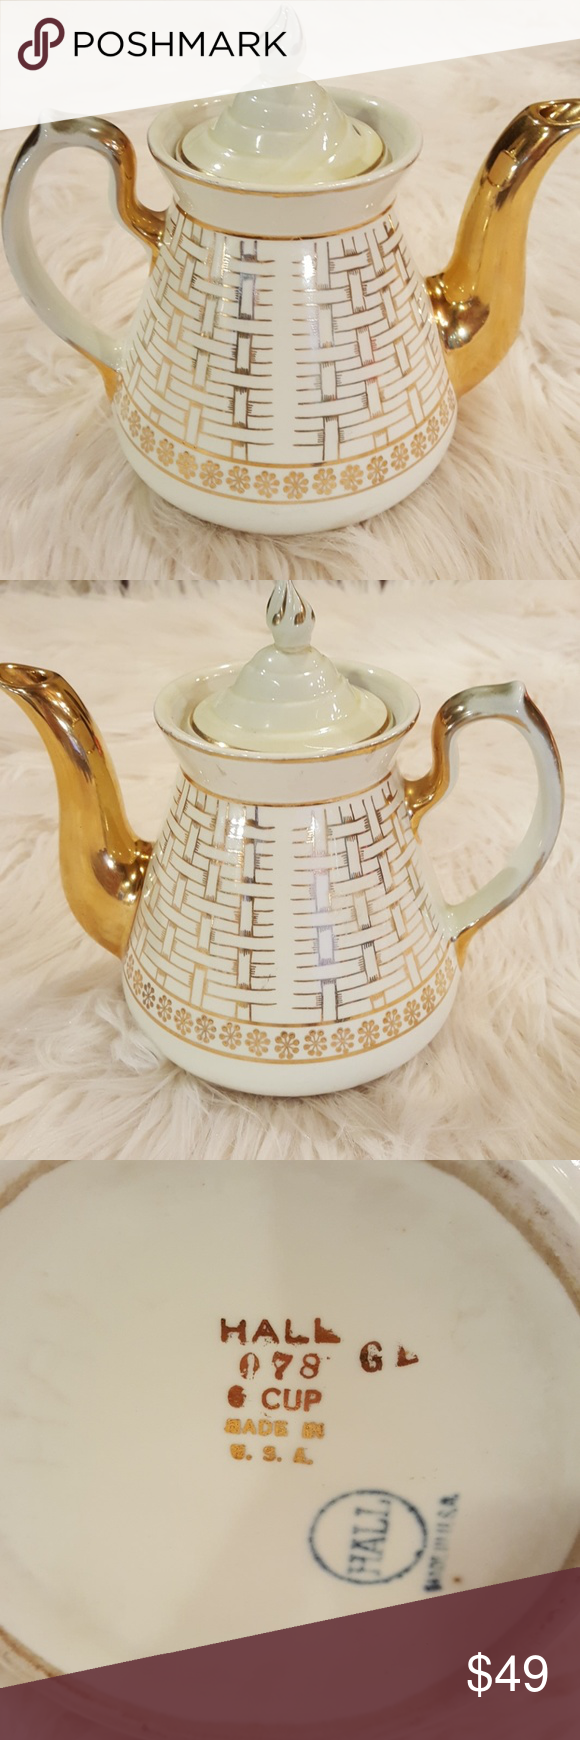 VINTAGE HALL #078  EVA ZEISEL GOLD WHITE TEAPOT Excellent vintage condition, see pics for handle flaws.  1940s.  Basketweave like pattern. Handle has missing gold gild on both sides.  8 inches with top x 7.5 spout to handle. Handle 7 inches.  No flaws on gold spout, see pic. Vintage Kitchen Coffee & Tea Accessories